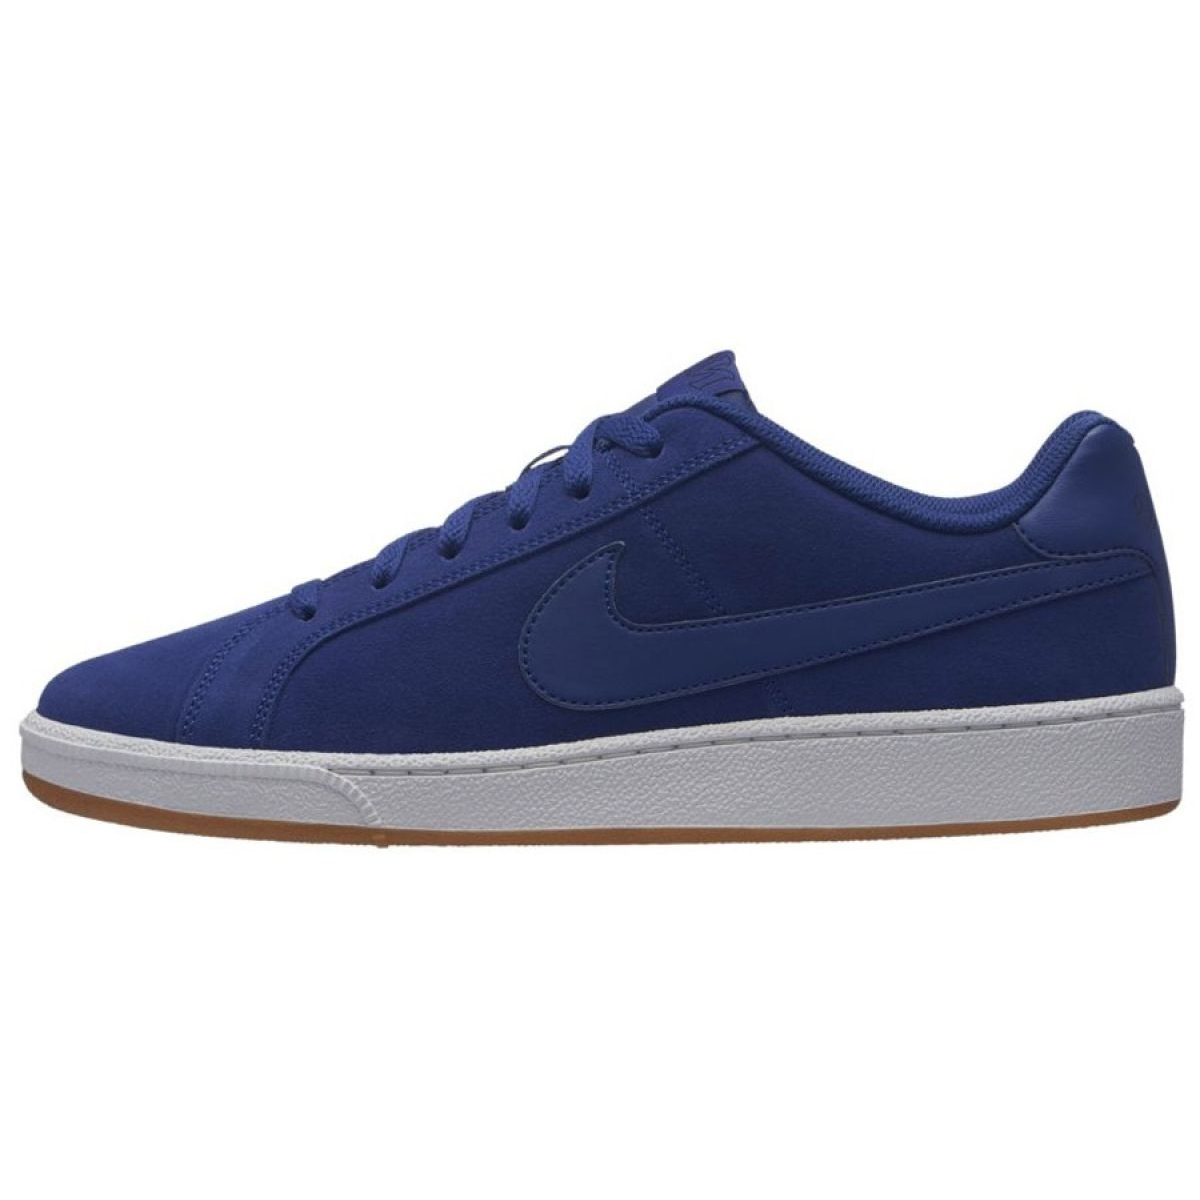 Details about Nike Court Royale Suede M 819802 405 blue